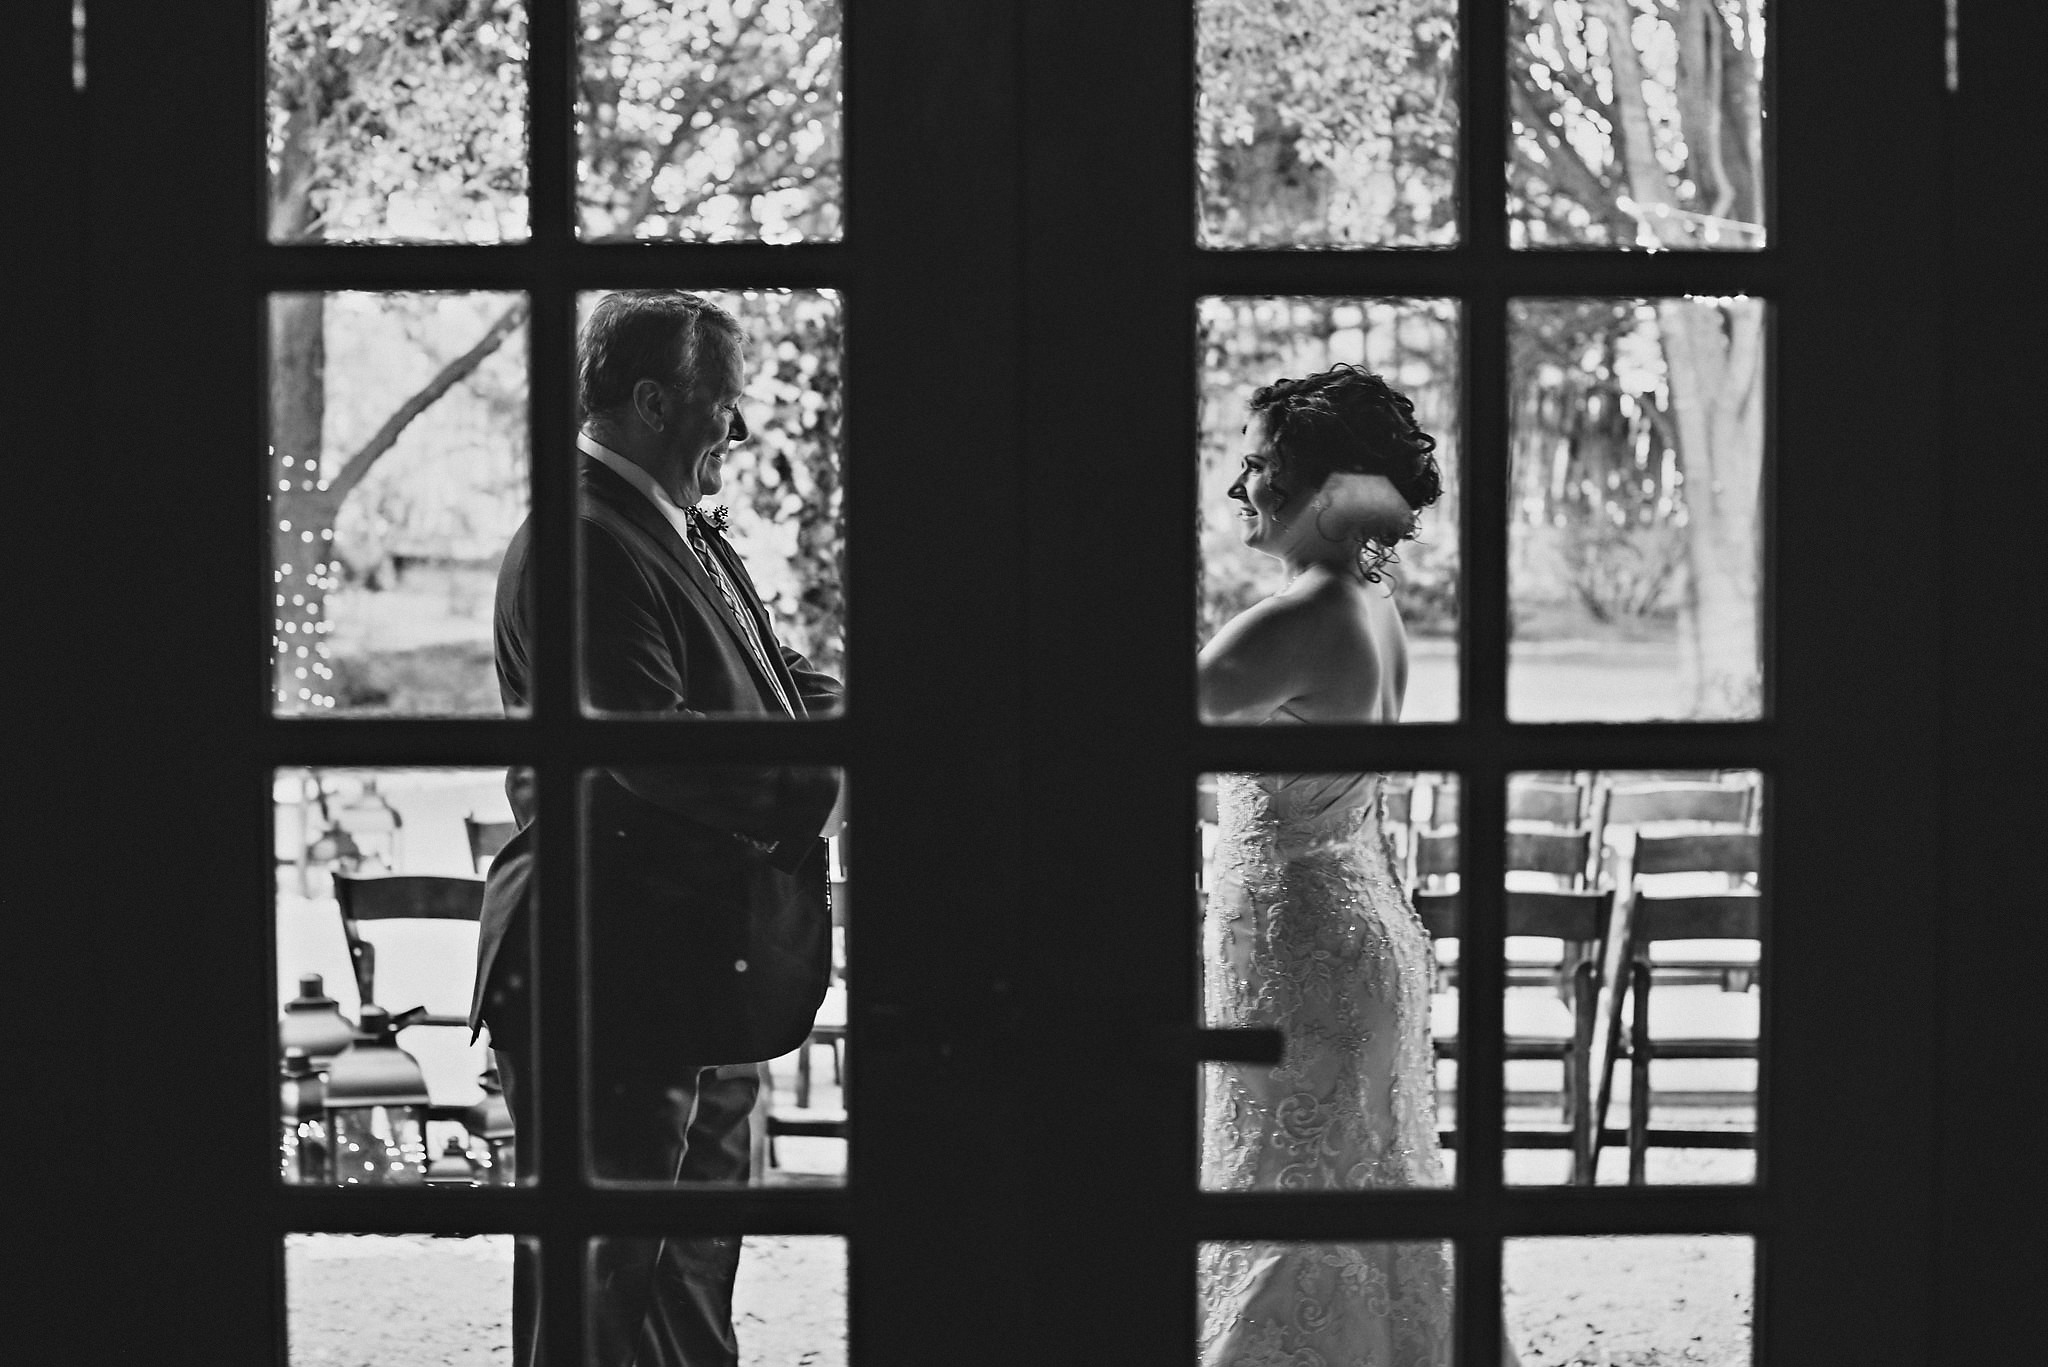 Eirik Halvorsen rustic wedding Fredericksburg Austin Texas wedding photographer-27.jpg